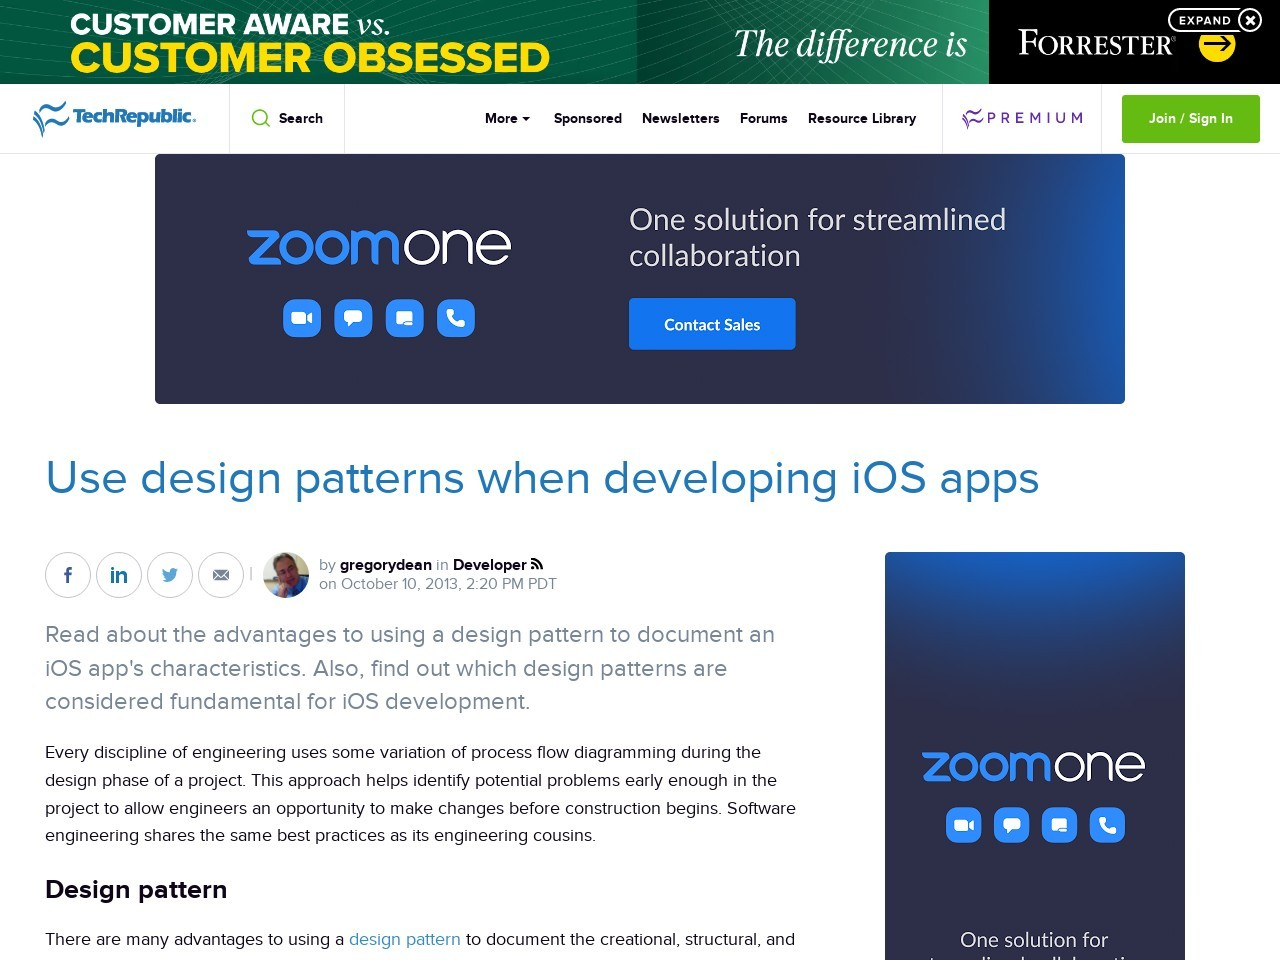 Use design patterns when developing iOS apps